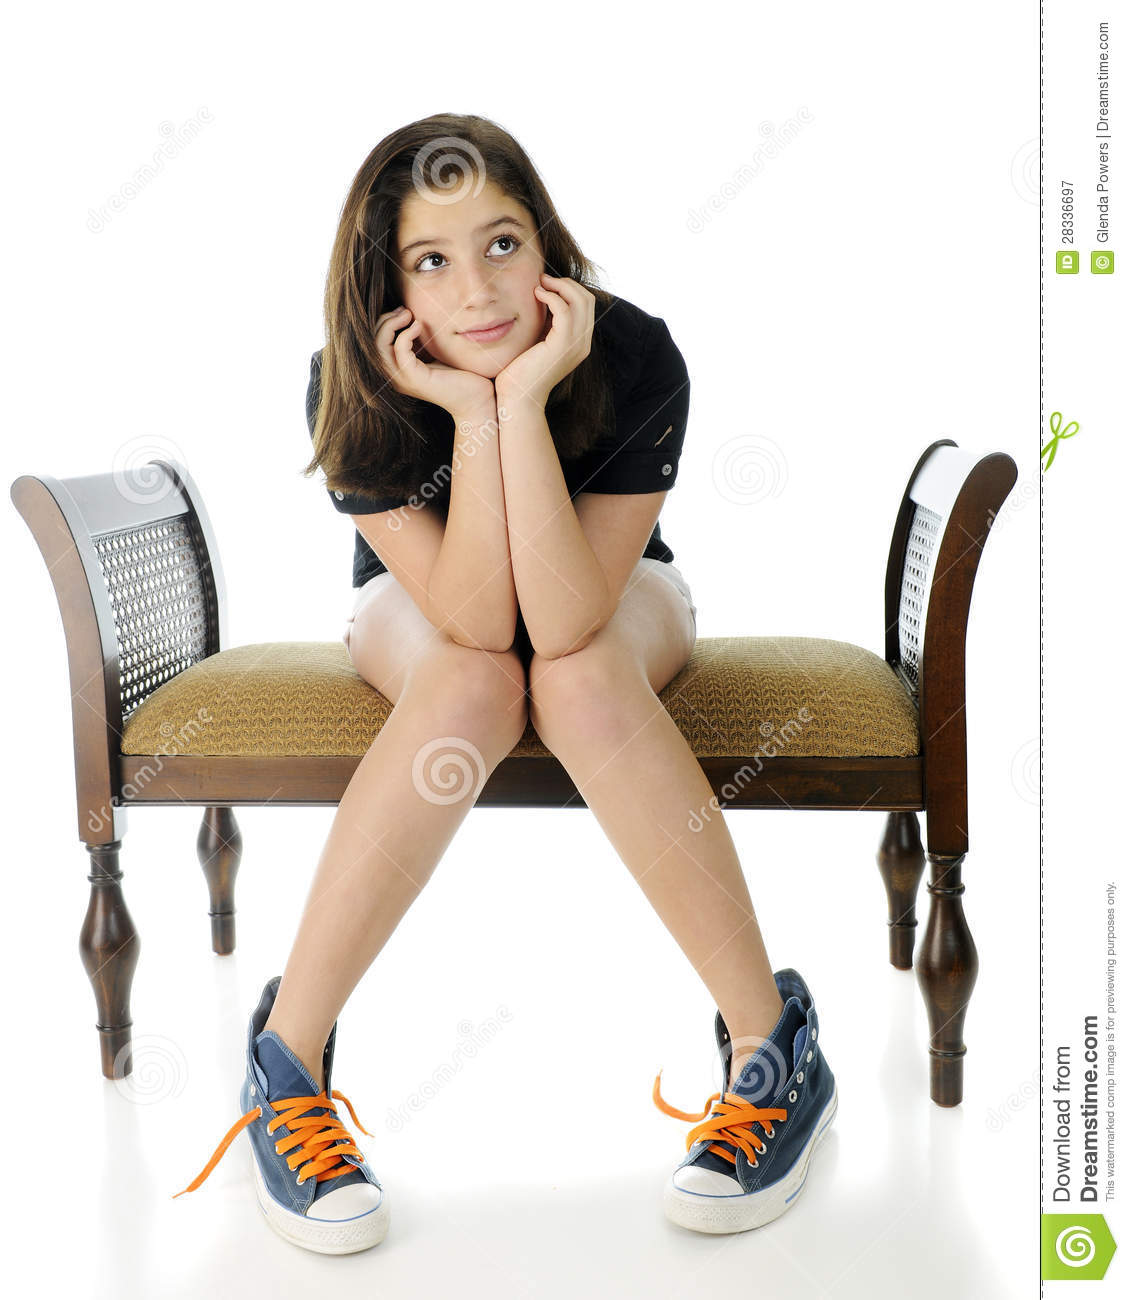 pretty preteen girl wistfully sitting on a bench with her head ...: dreamstime.com/royalty-free-stock-photography-wistful-tween...